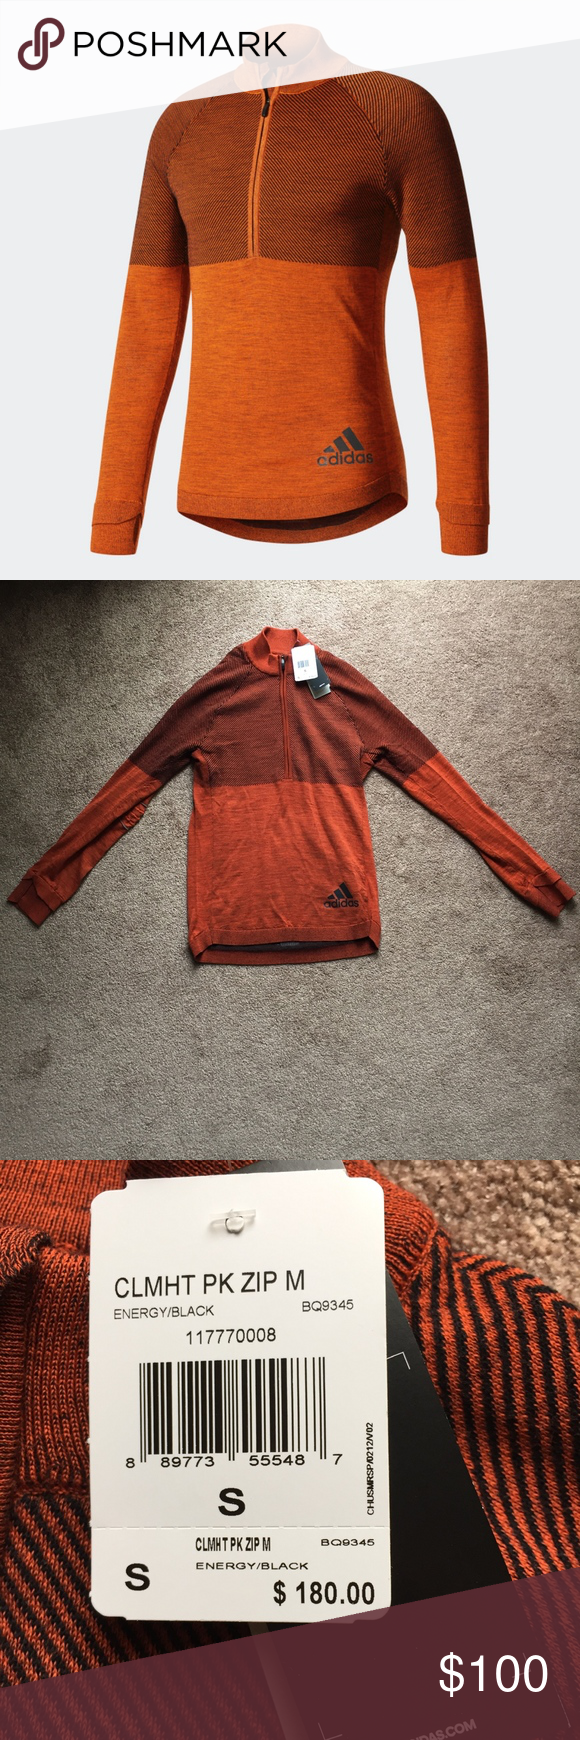 Predownload: Adidas Climaheat Primeknit Sweatshirt Orange Small Brand New With Tags Size Small Color Orange Black Style Mens Running Tops Running Tops Clothes Design [ 1740 x 580 Pixel ]